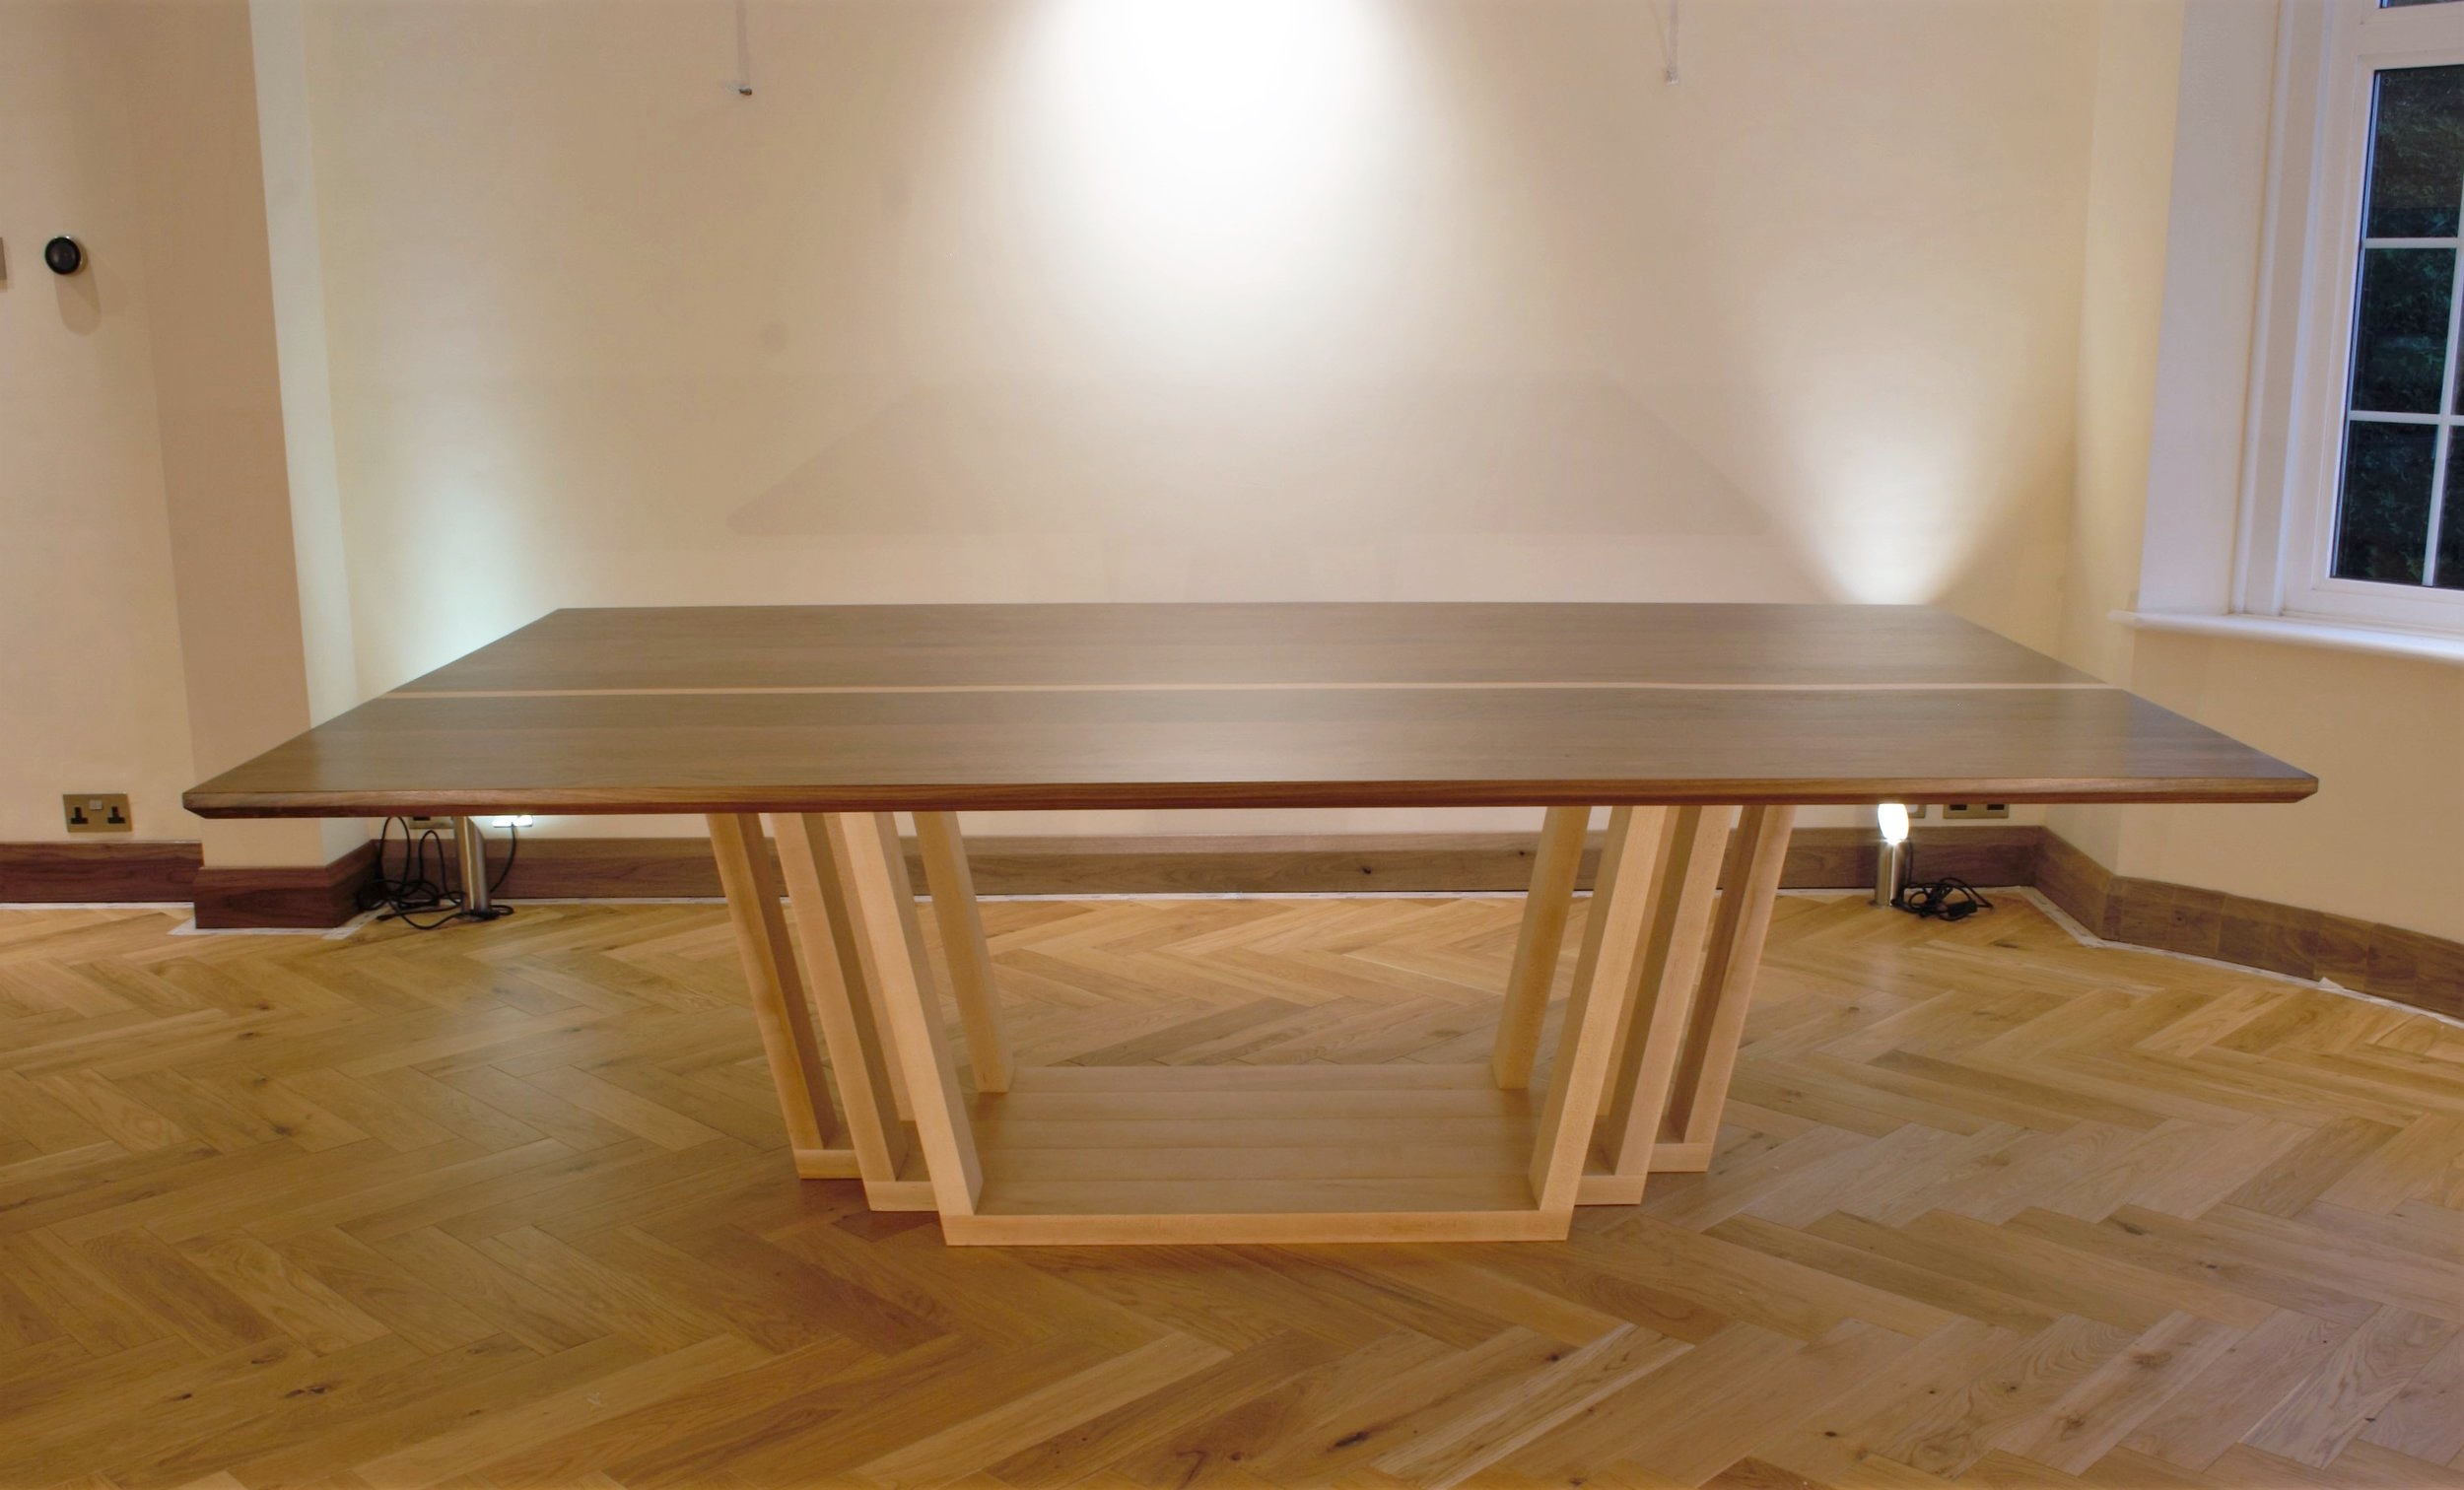 Heliconia_Furniturte_WalnutMaple_DiningTable_Installed (3).jpg